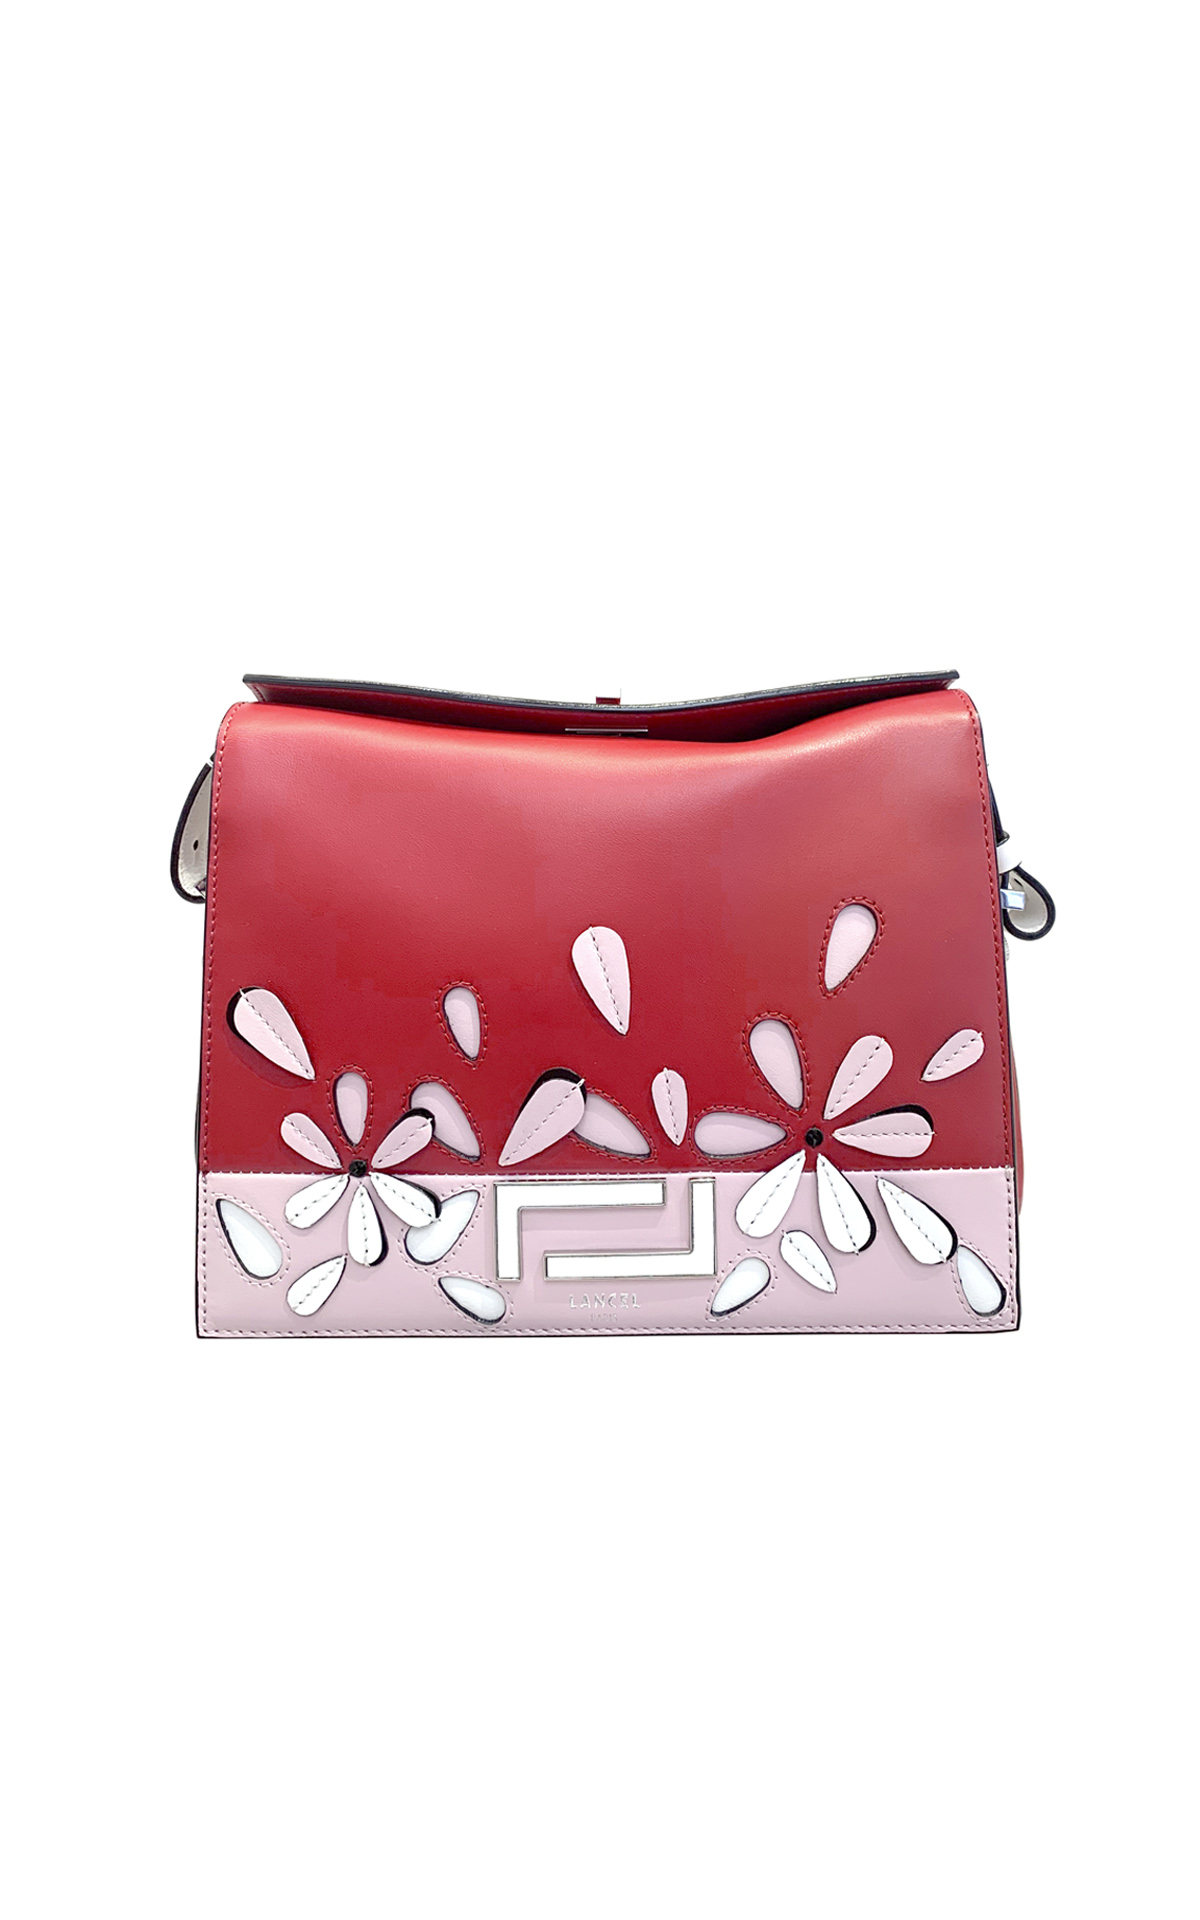 Red and pink leather bag with flowers Lancel